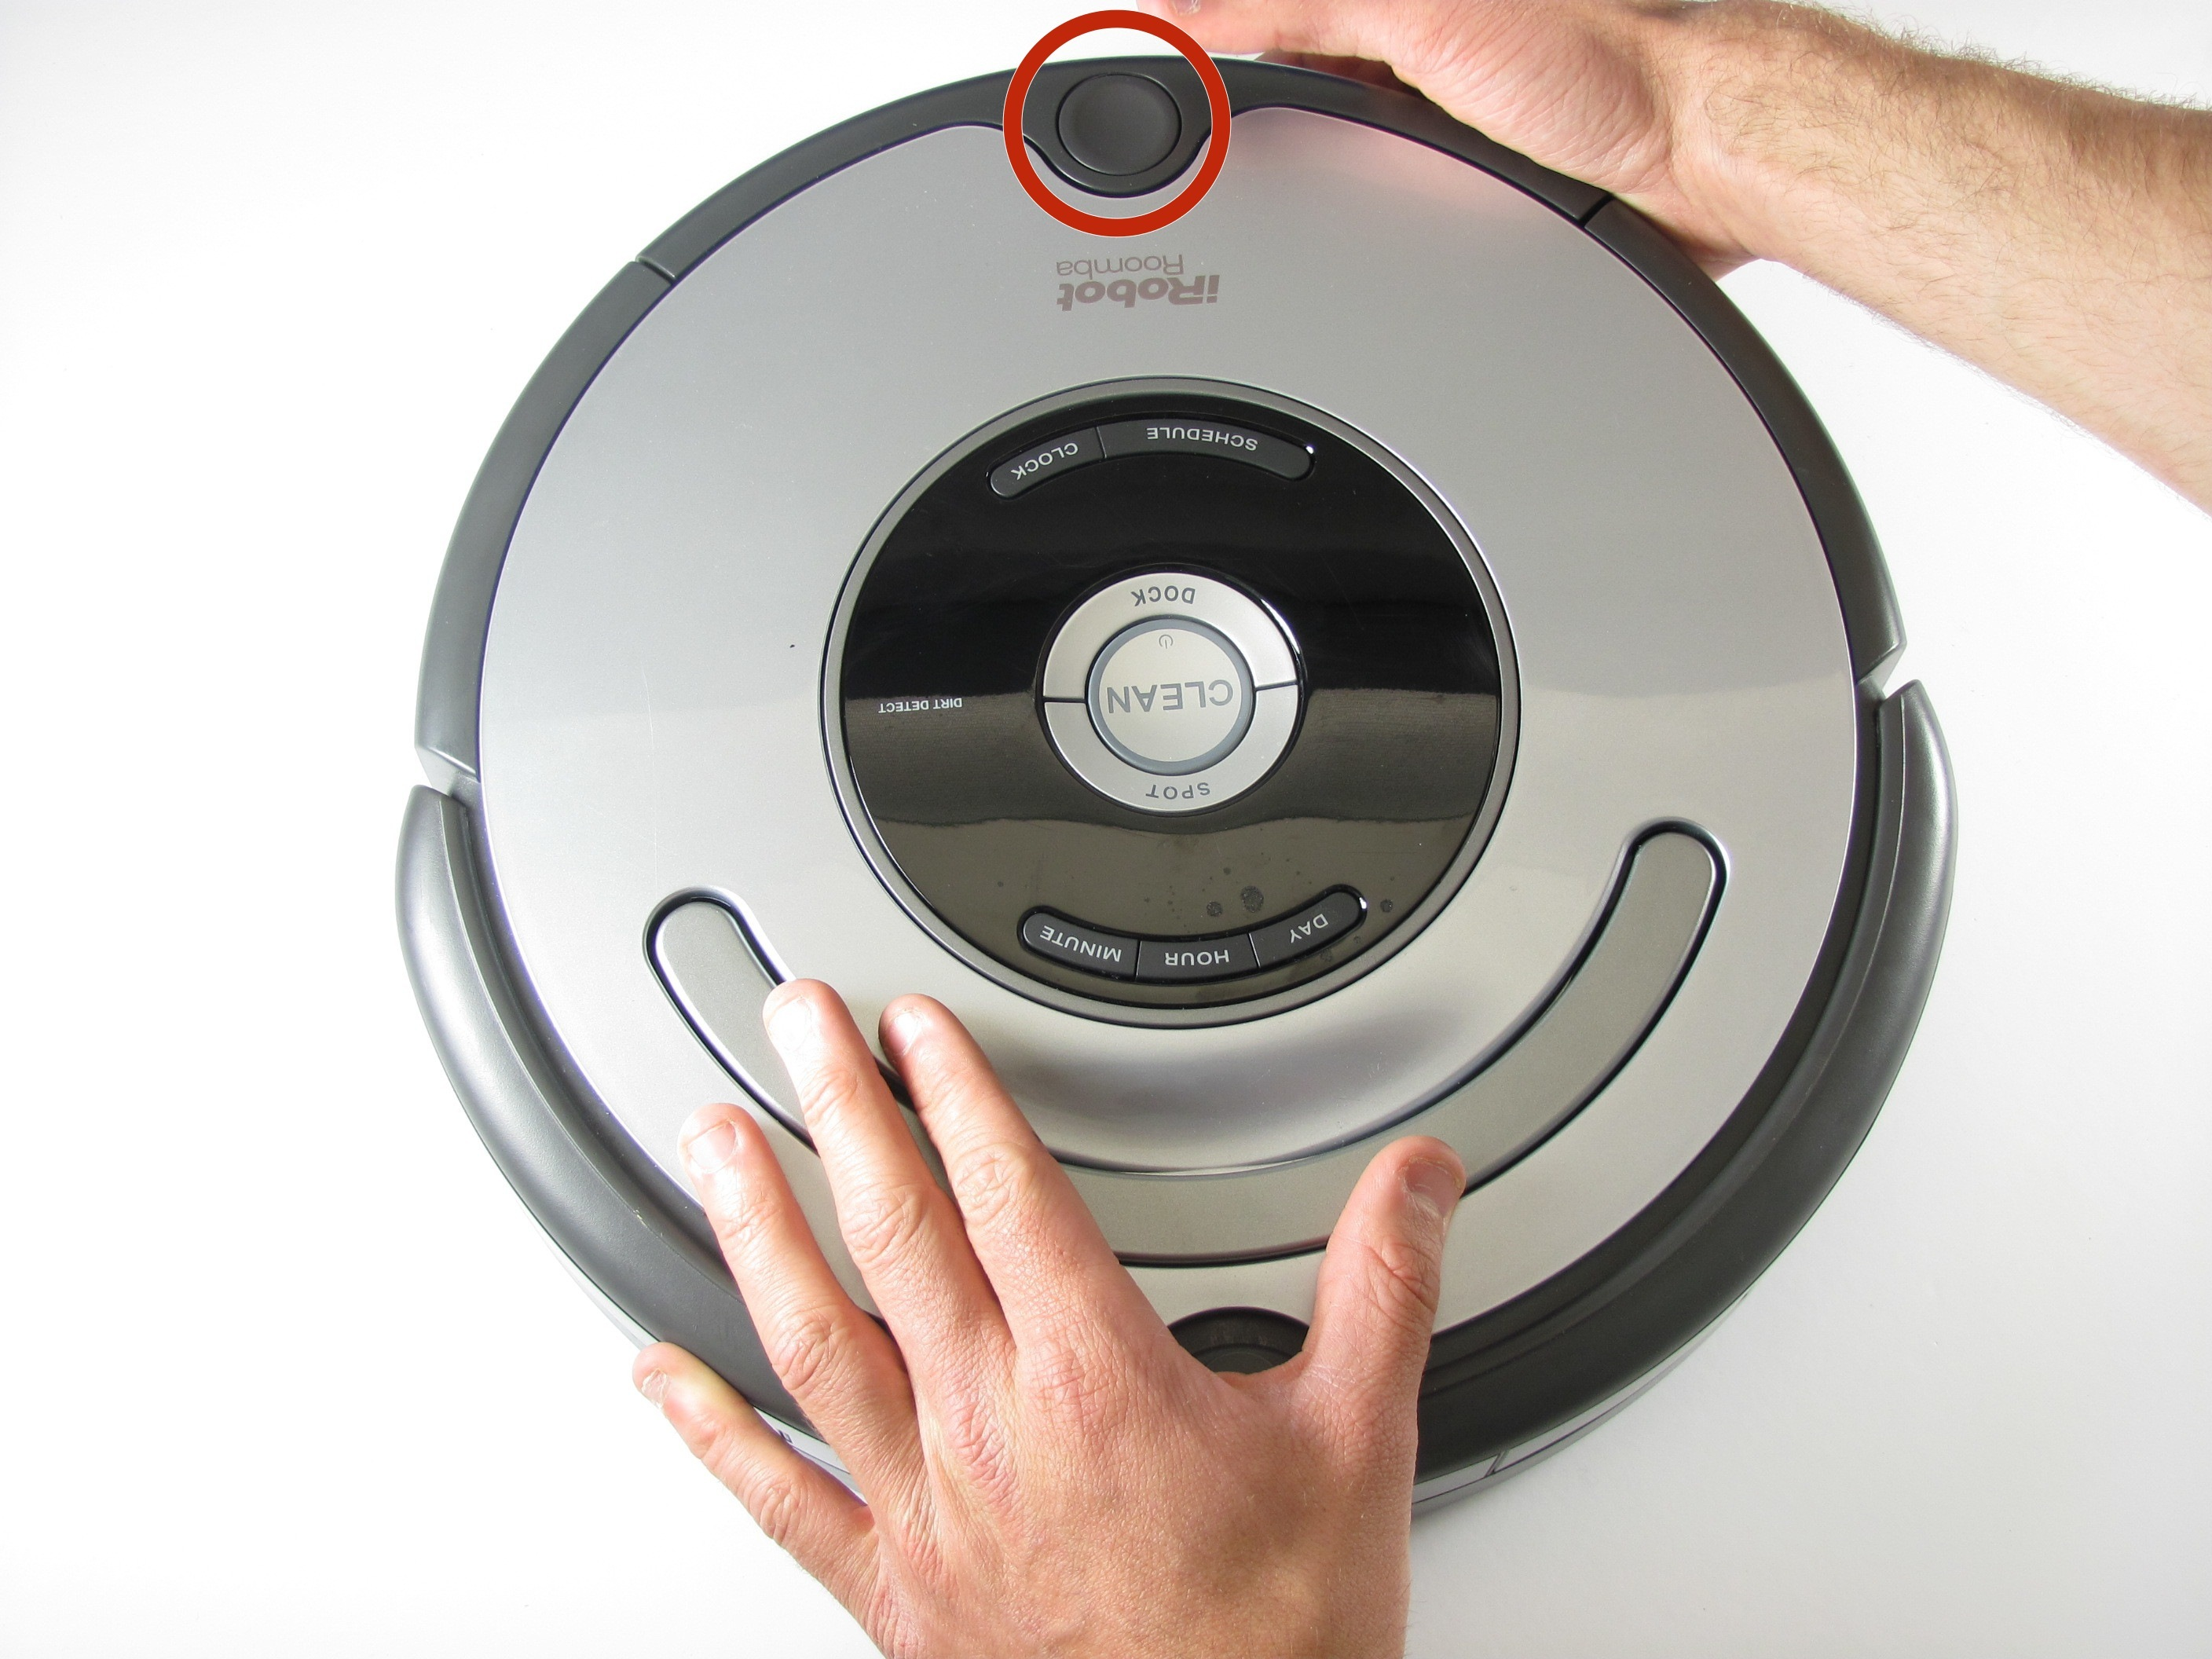 irobot roomba 400 owners manual